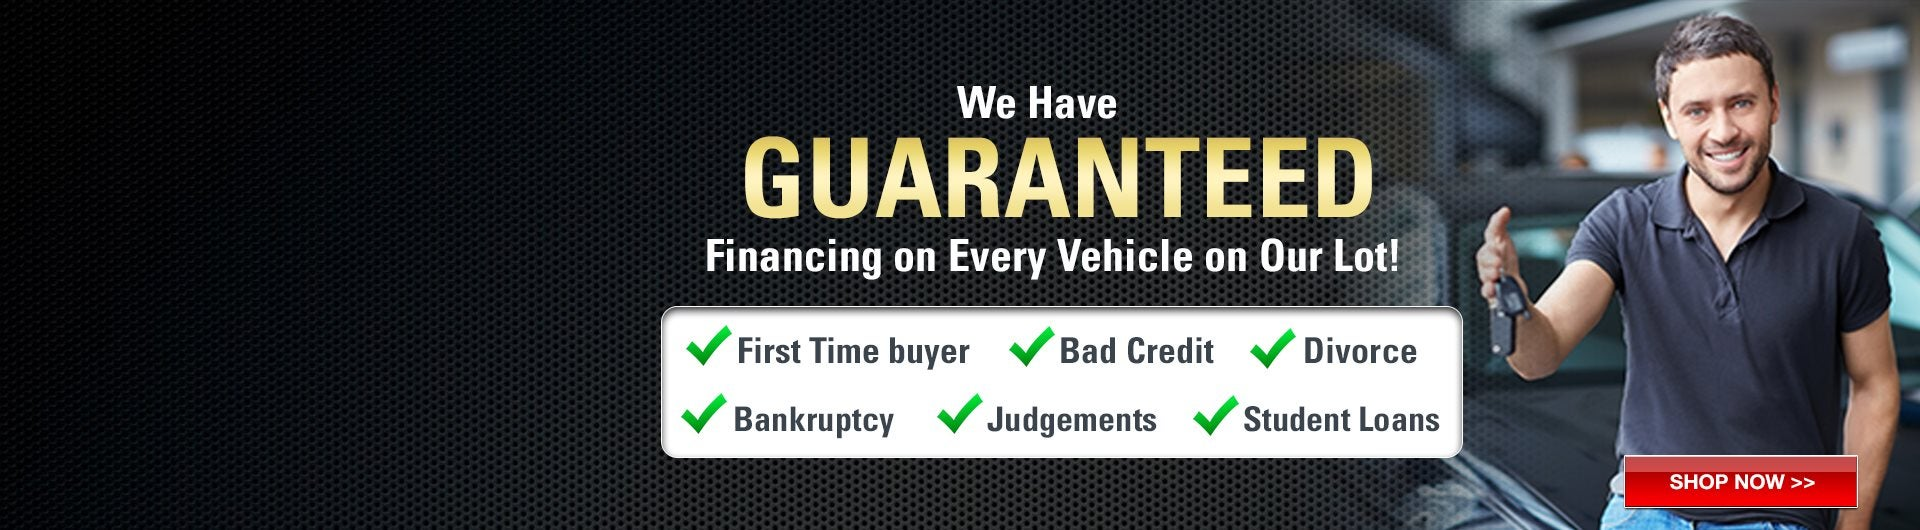 Guaranteed Financing Car Dealerships Near Me >> Queensbury Ny Used Cars Bad Credit Car Loans Near